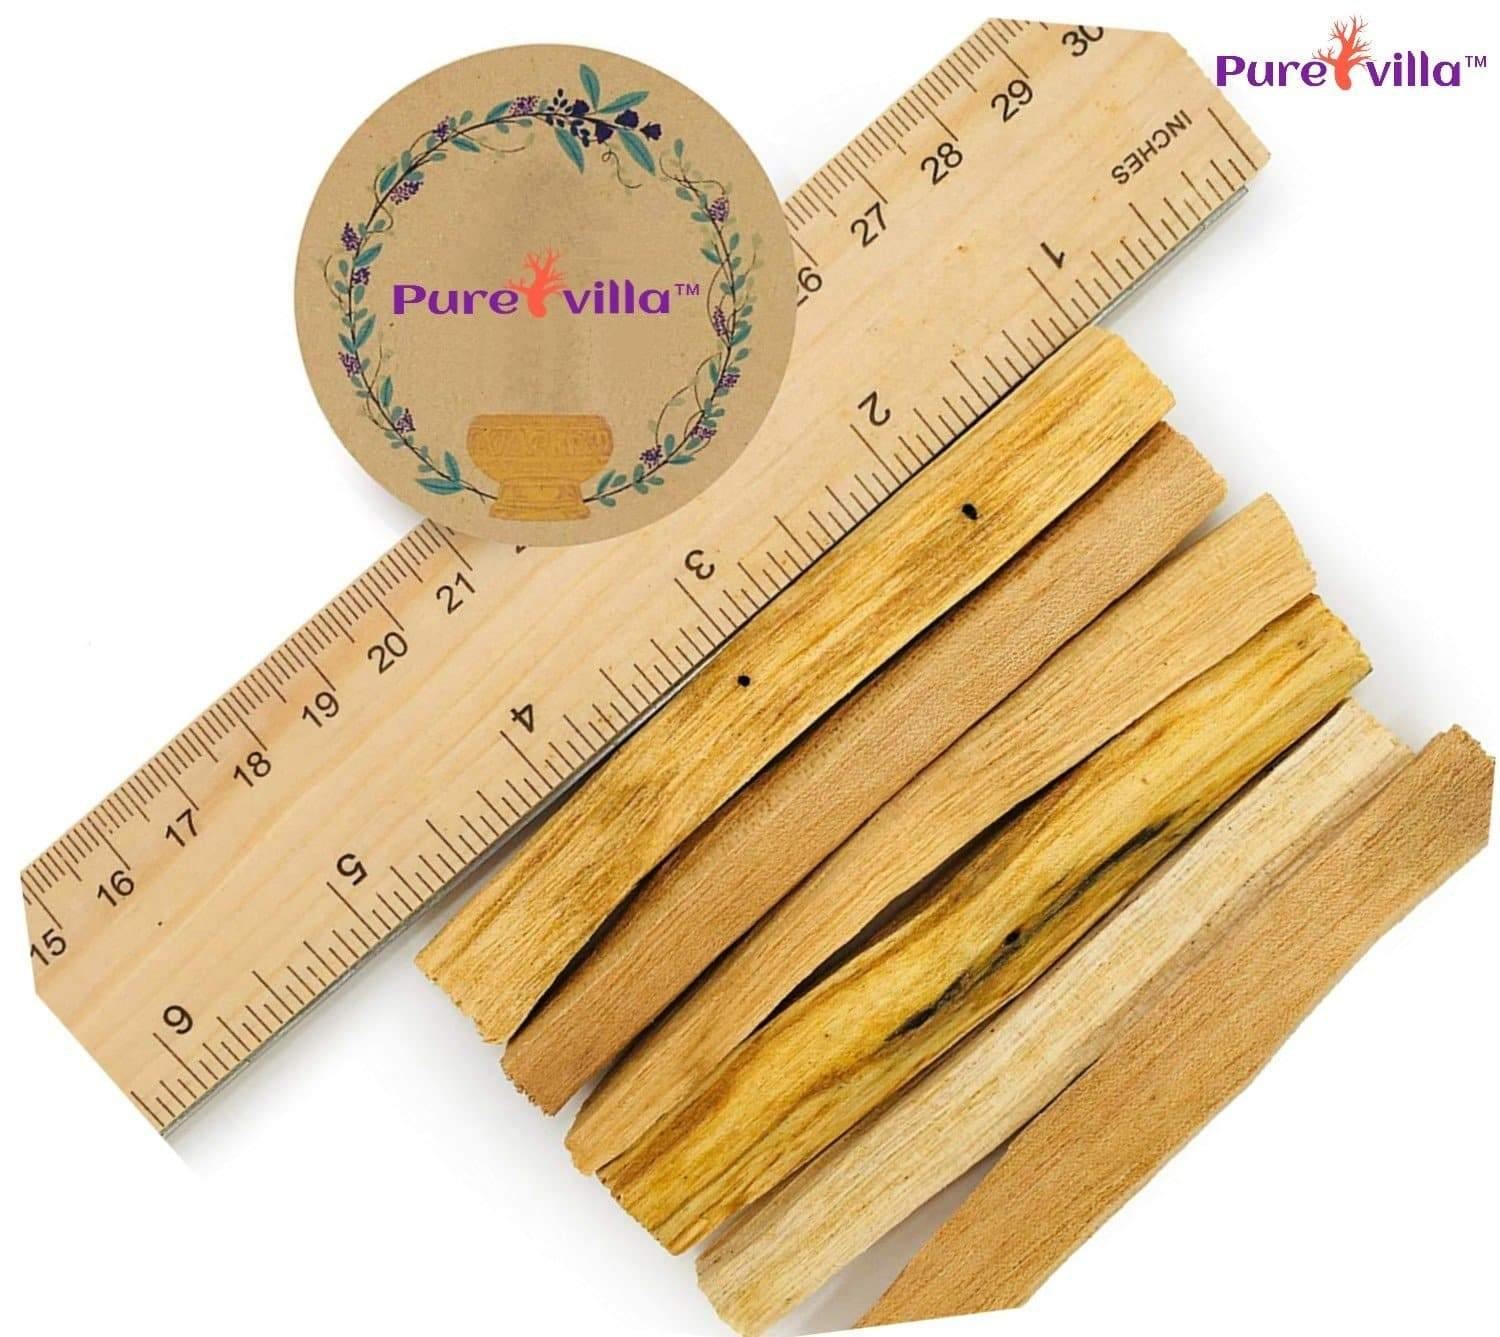 Premium Palo Santo Holy Wood Incense Sticks 4 Ounces 100 Natural And Sustainable Wild Harvested